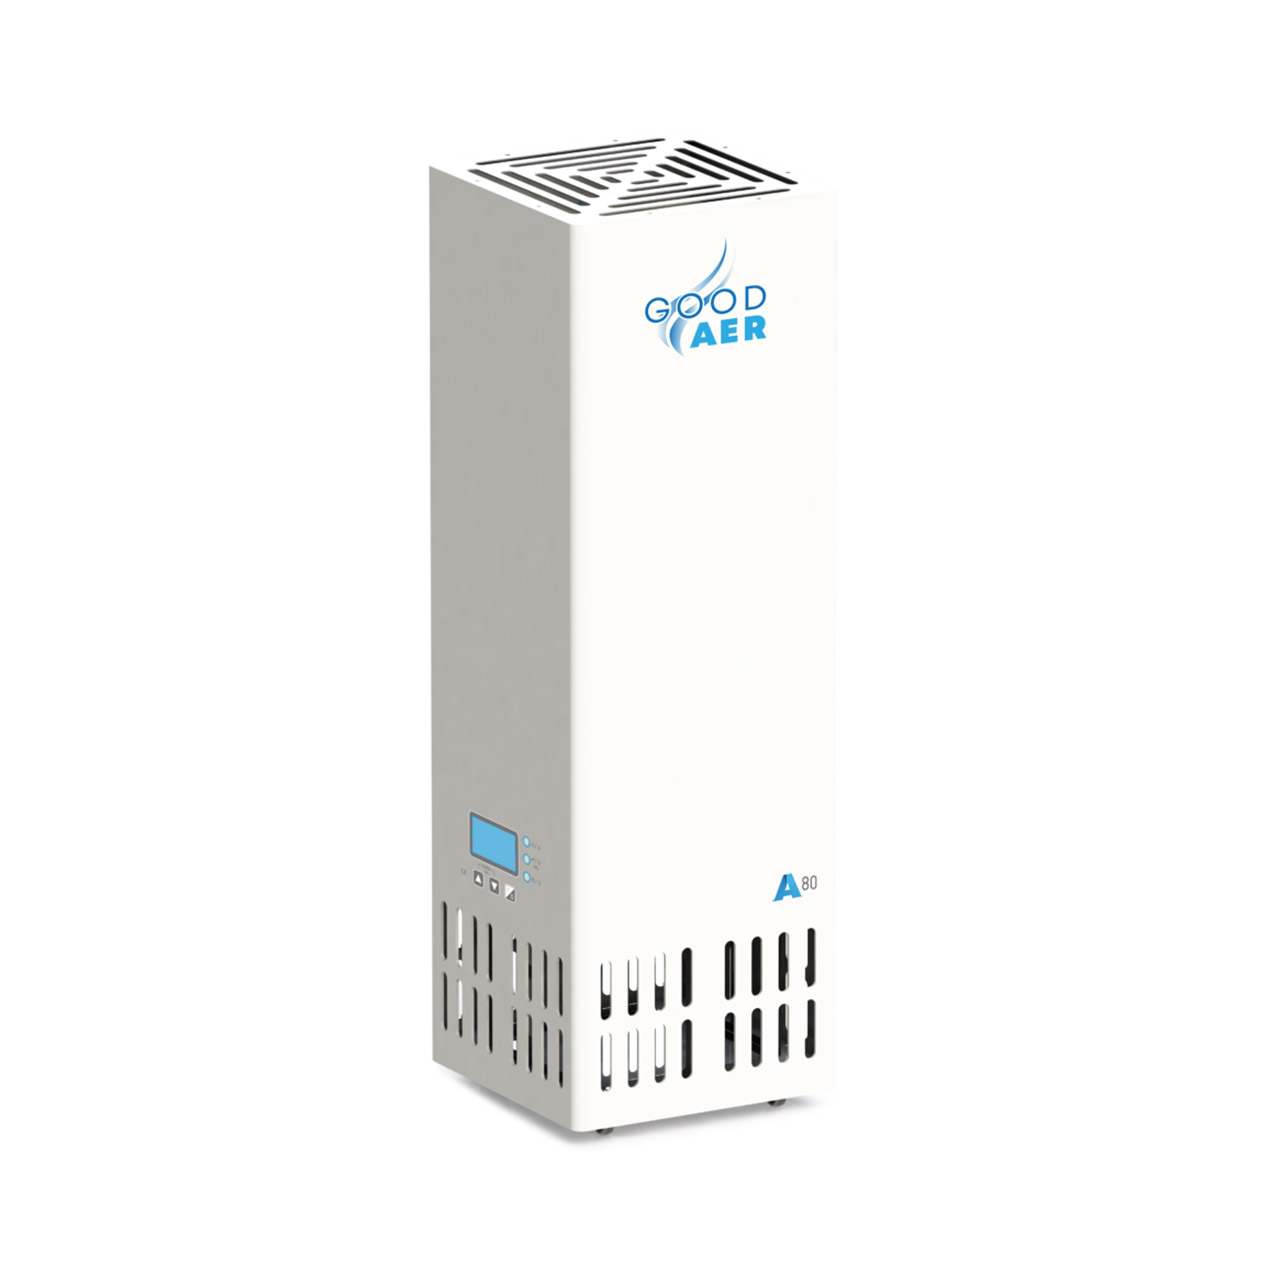 GoodAer Air Purifier A80 - for rooms up to 80m²